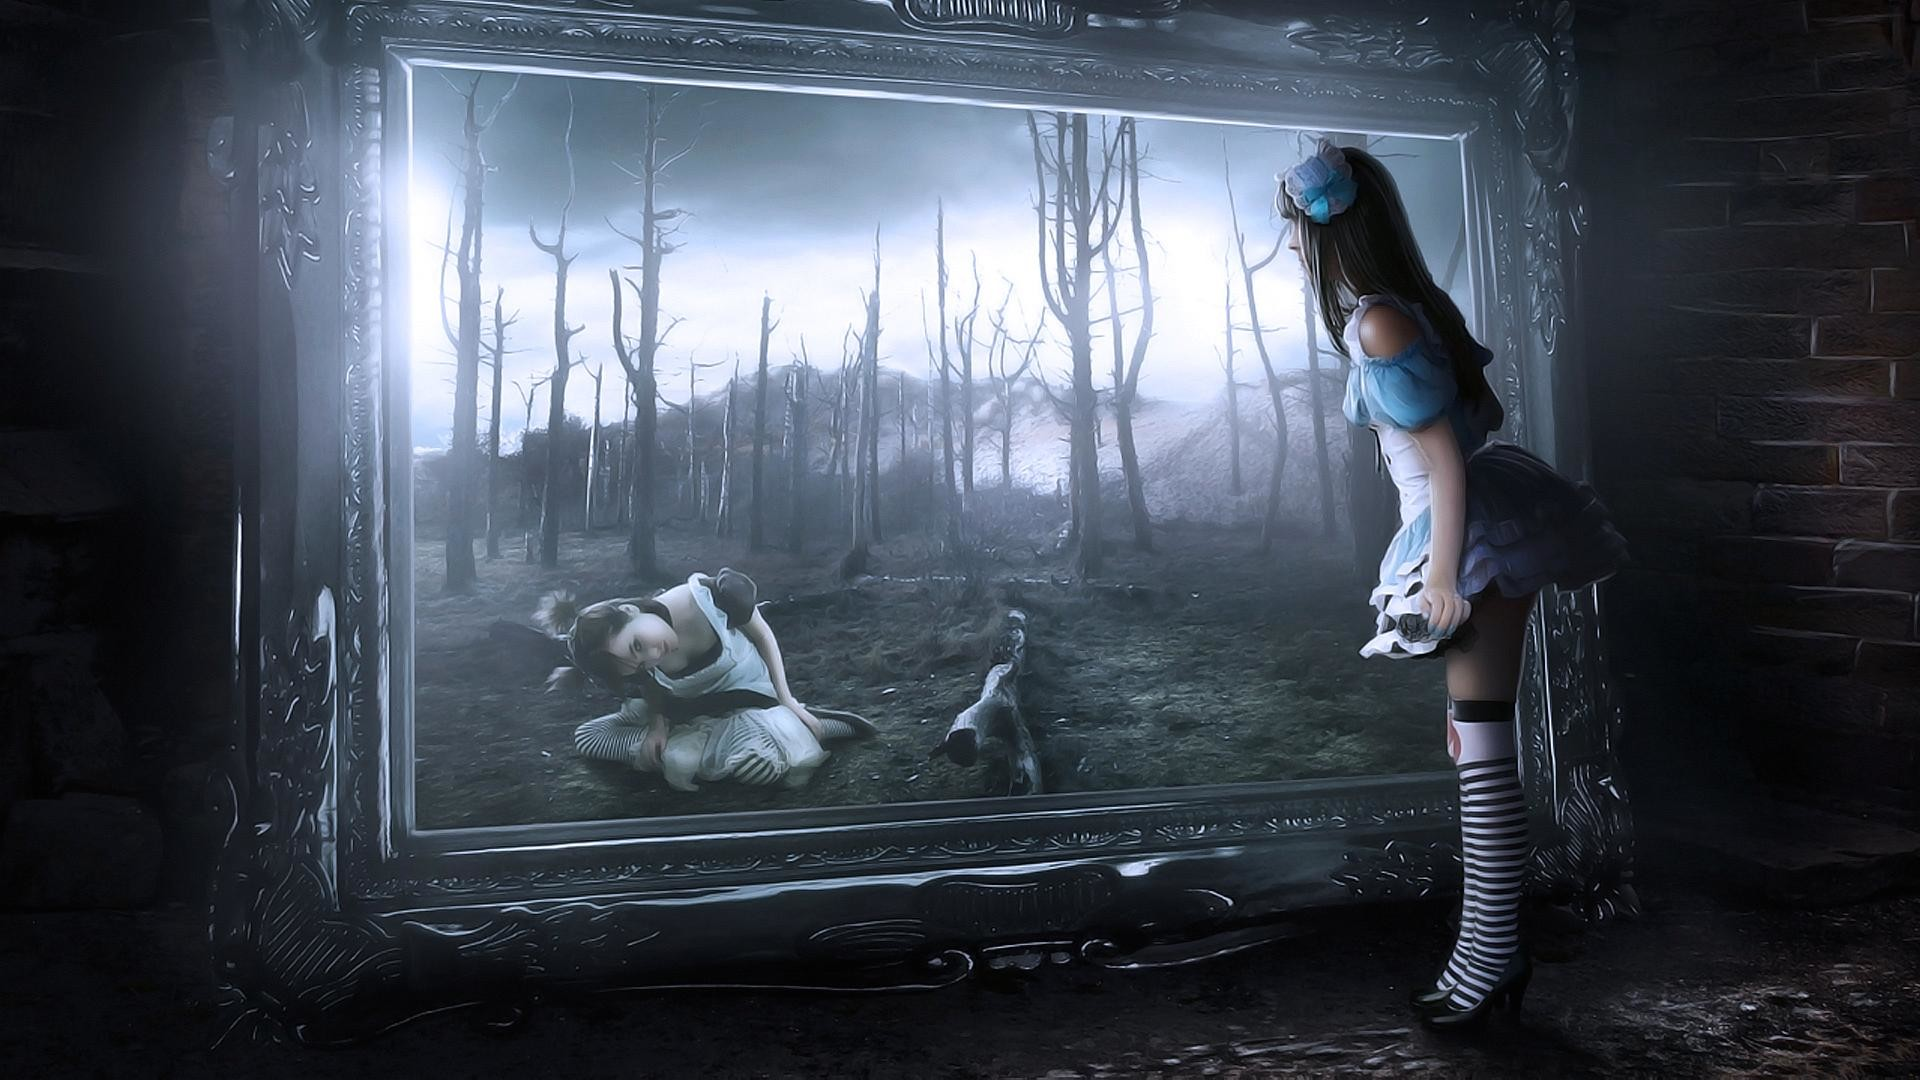 1920x1080 Full Image for Alice In Wonderland Mirror 141 Cool Ideas For Wallpaper Alice  Mirror Wonderland ...